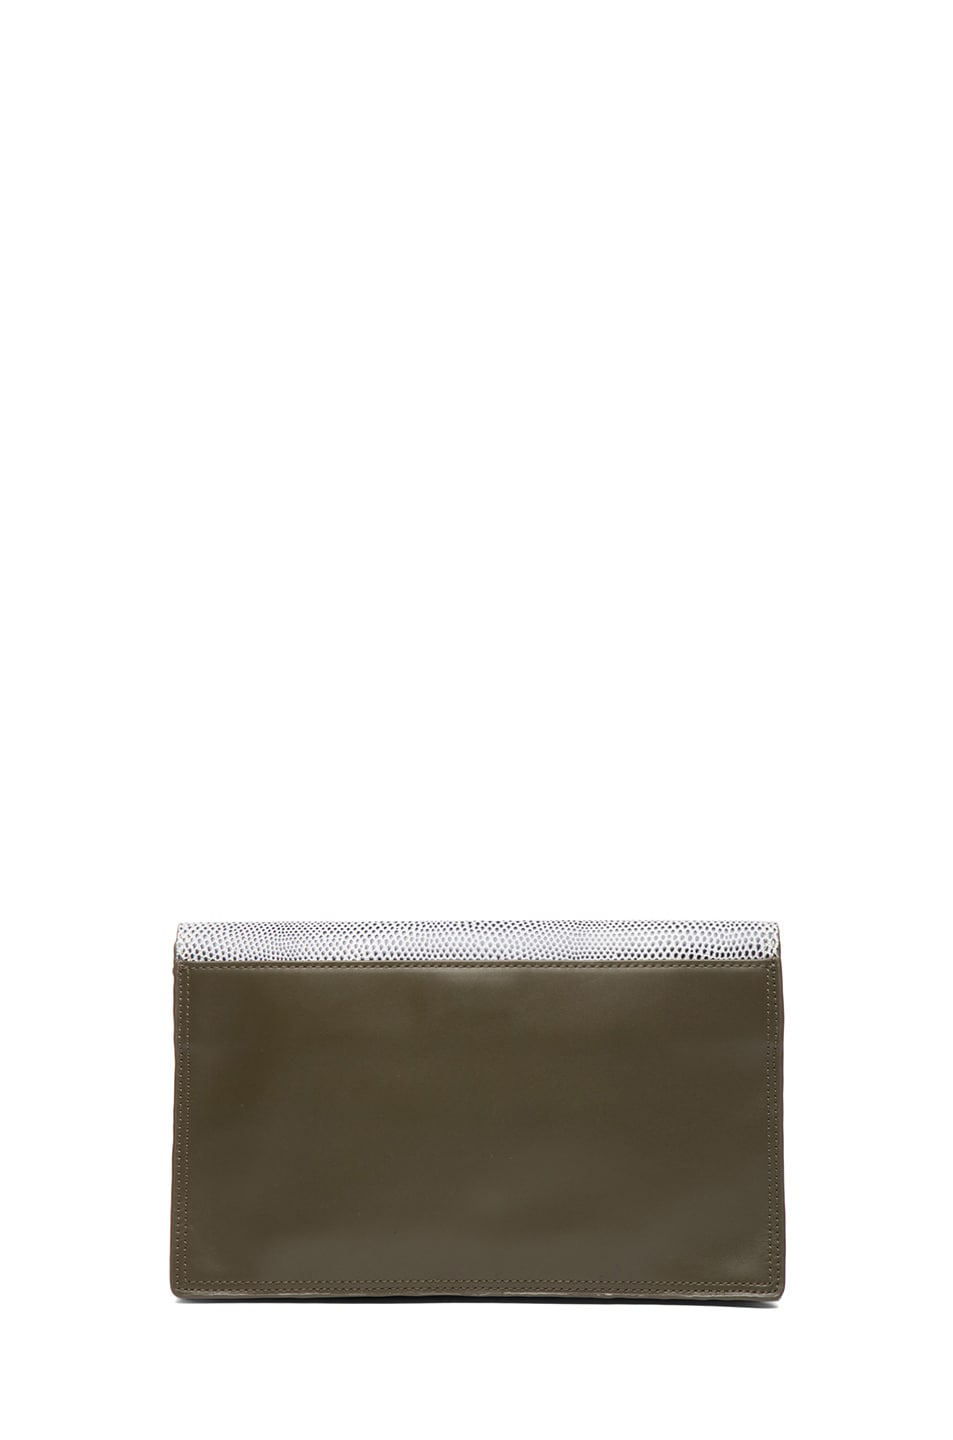 Image 2 of 3.1 phillip lim Scout Flap Clutch in White & Black & Dark Olive